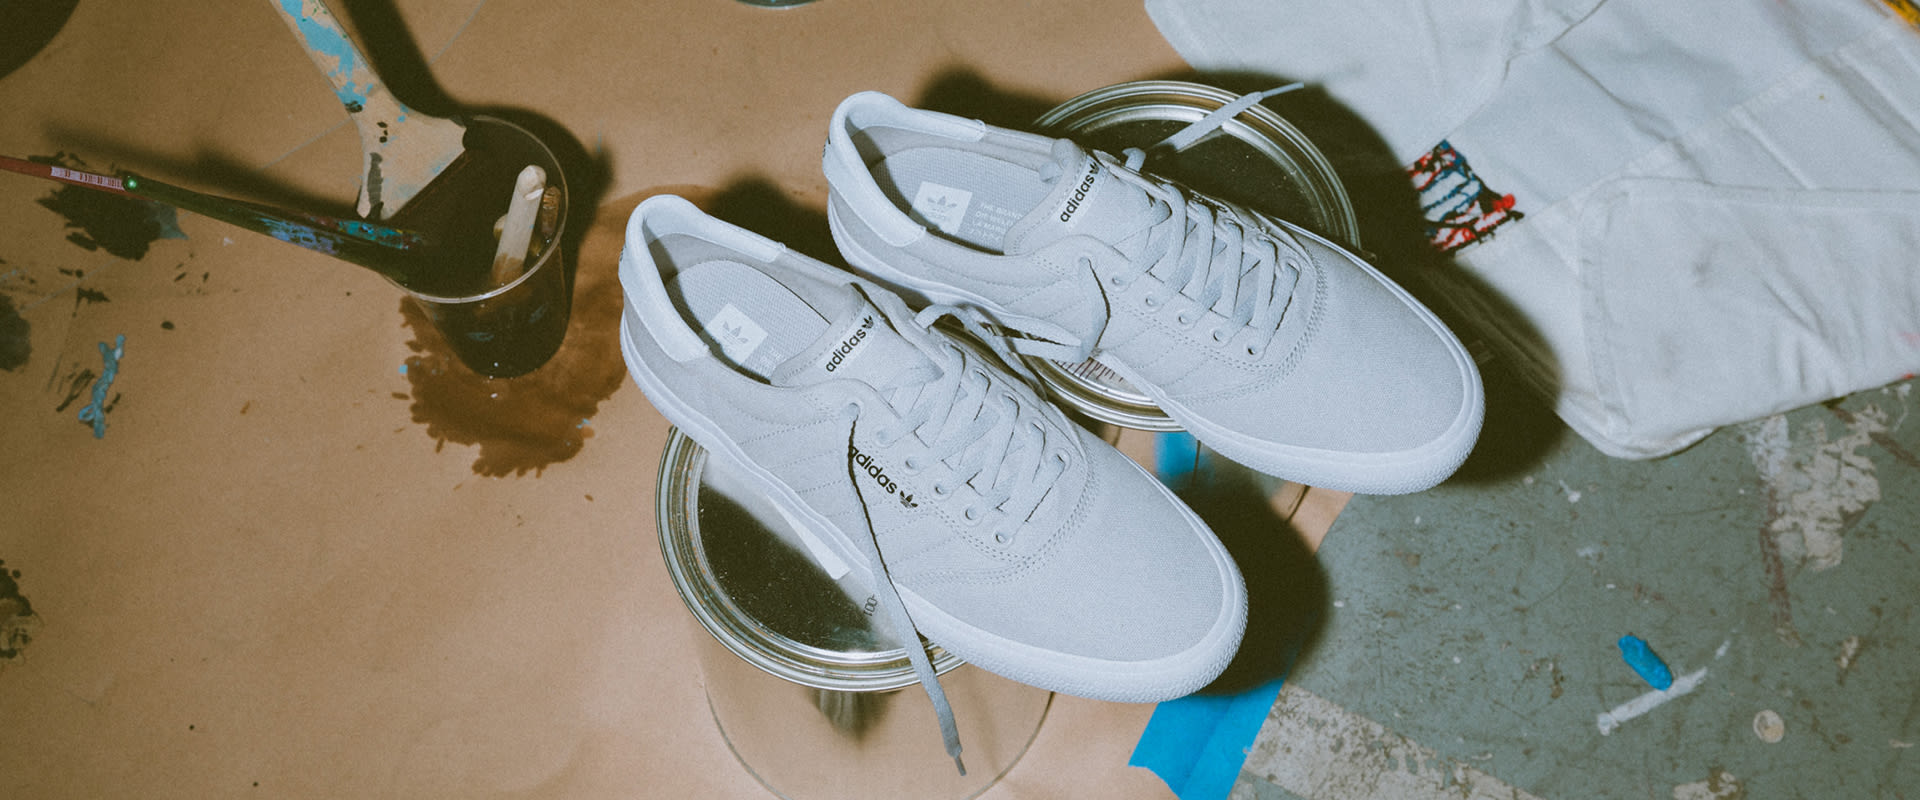 finest selection 450b4 601c2 Originals Sneakers  amp  Apparel - Free Shipping  amp  Returns   adidas US